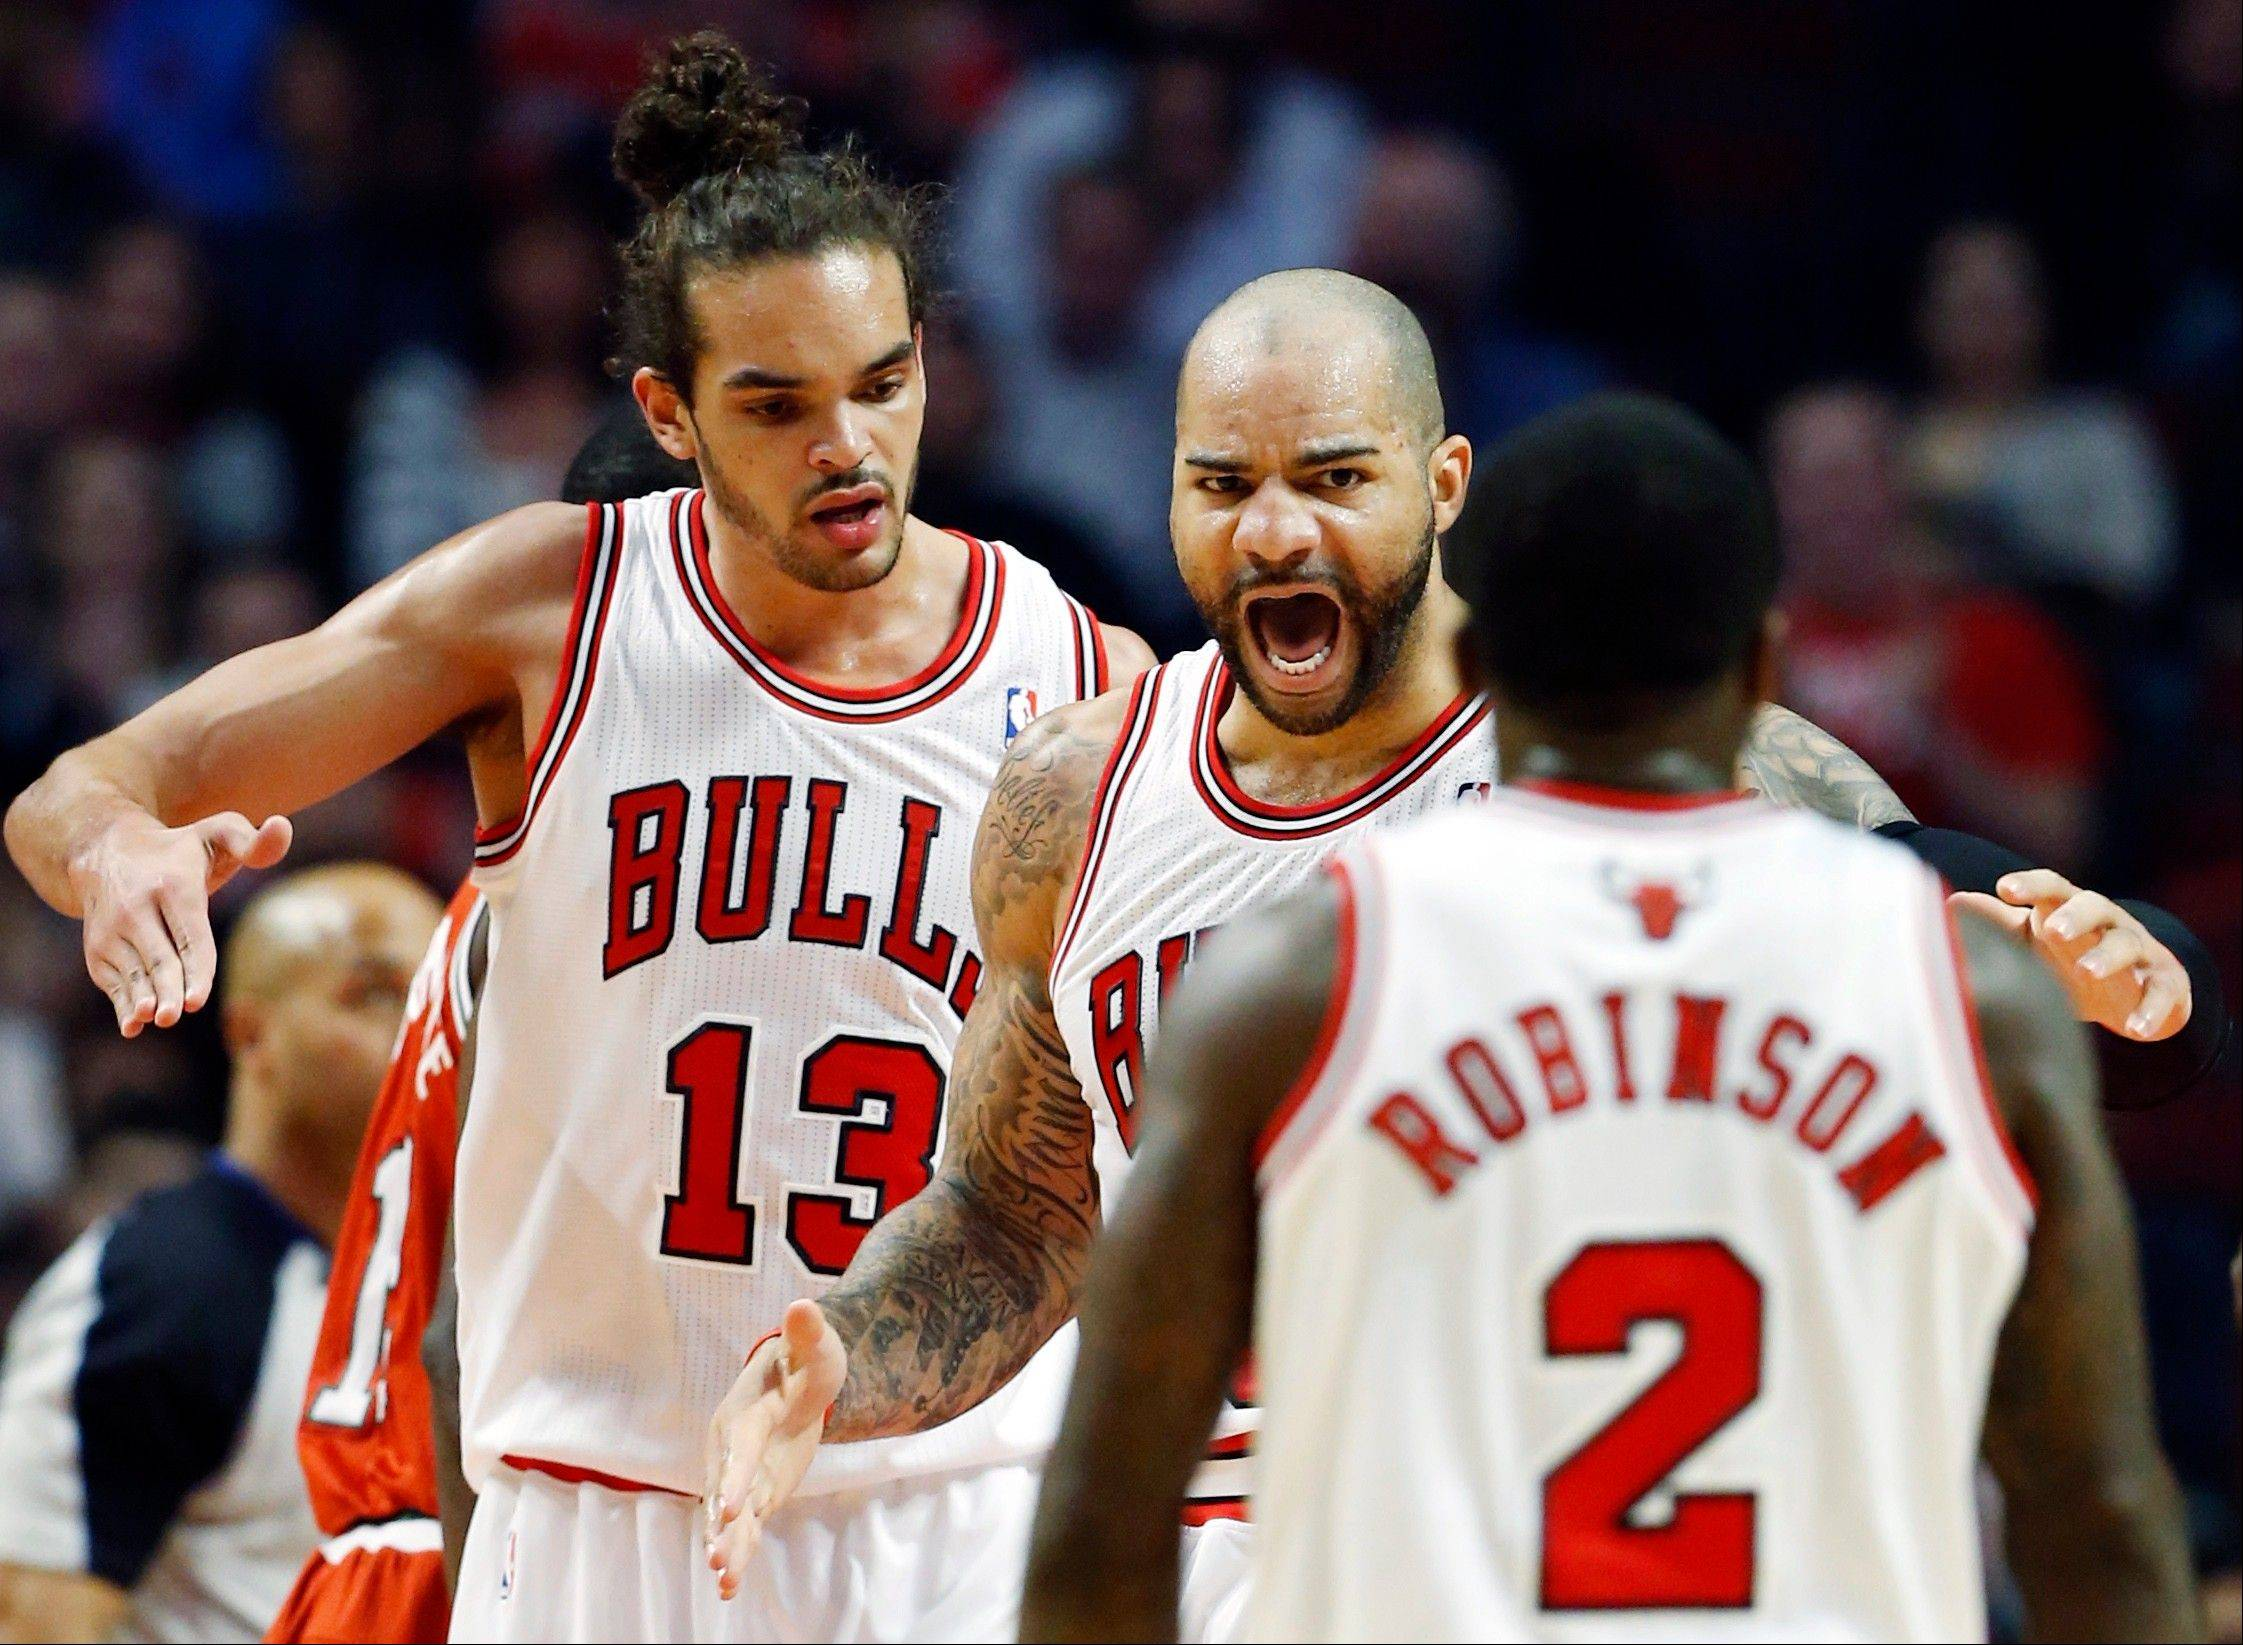 Chicago Bulls forward Carlos Boozer, center, reacts as he celebrates with center Joakim Noah (13) and guard Nate Robinson (2) after scoring during the first half of an NBA basketball game against Wednesday the Milwaukee Bucks in Chicago.